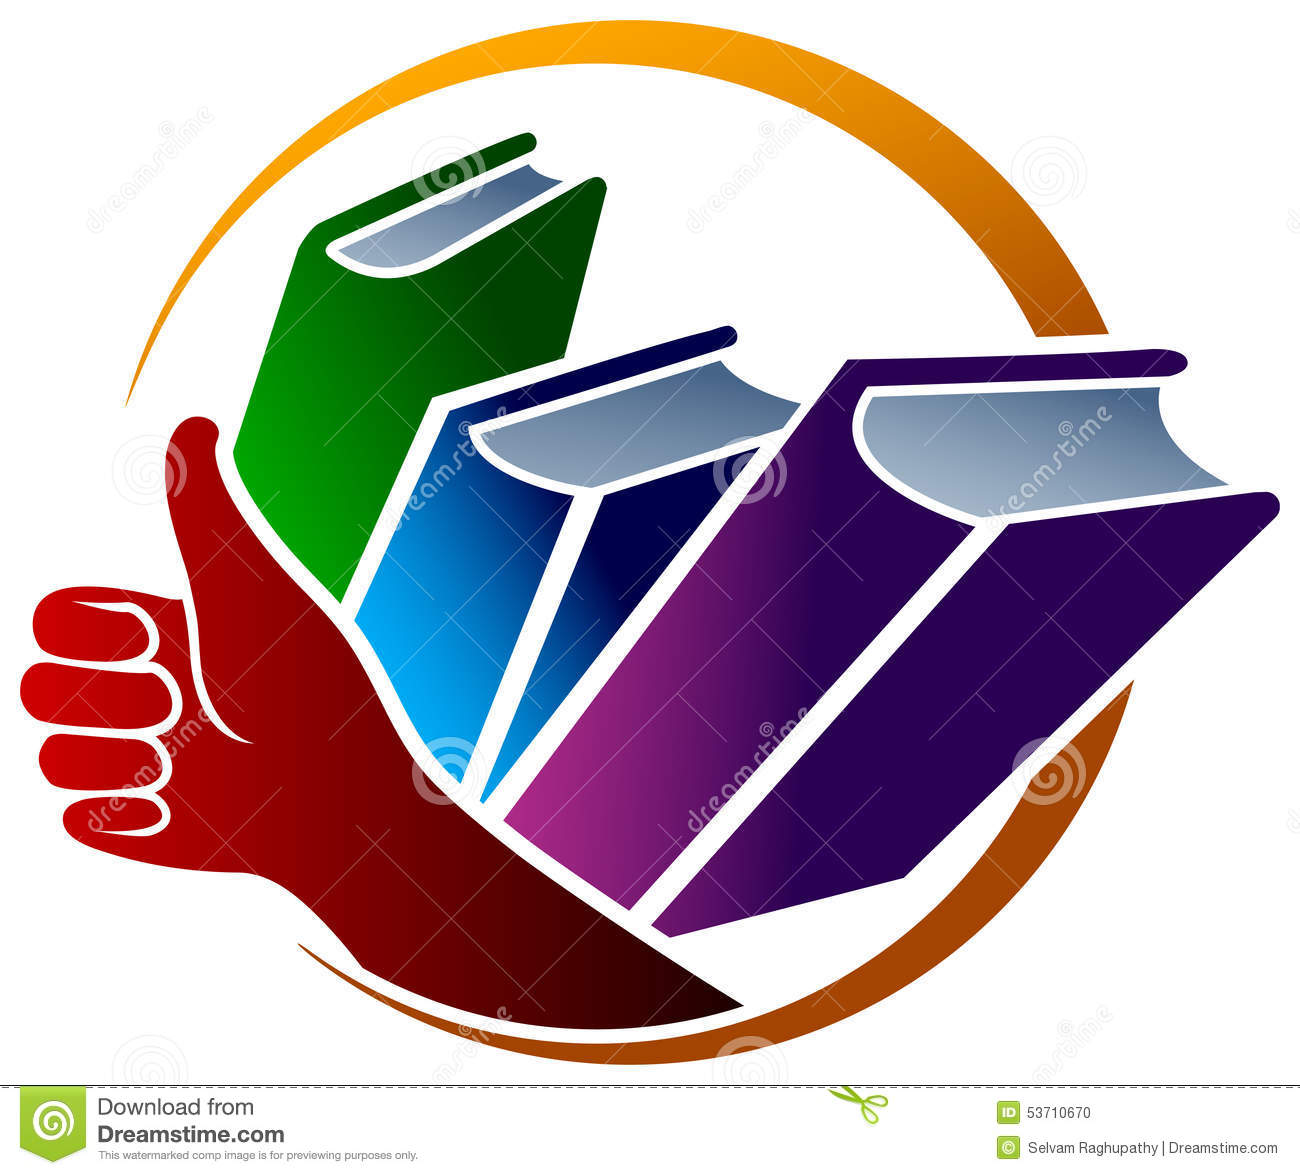 Books Logo Stock Vector - Image: 53710670